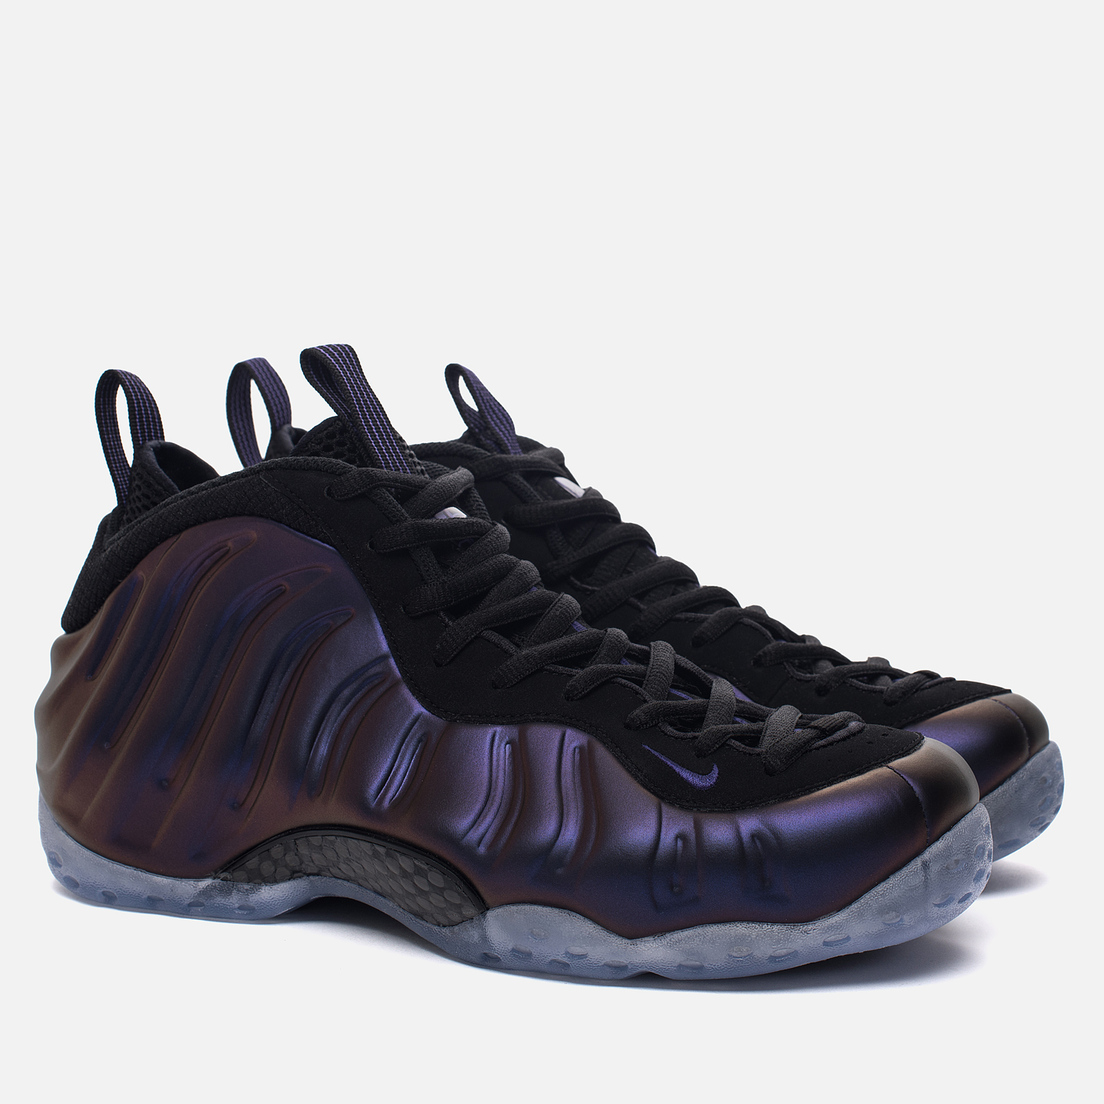 AIR FOAMPOSITE ONE PRO EGGPANT PURPLE RETRO SNEAKERS SHOES KEY CHAIN RING HOLDER